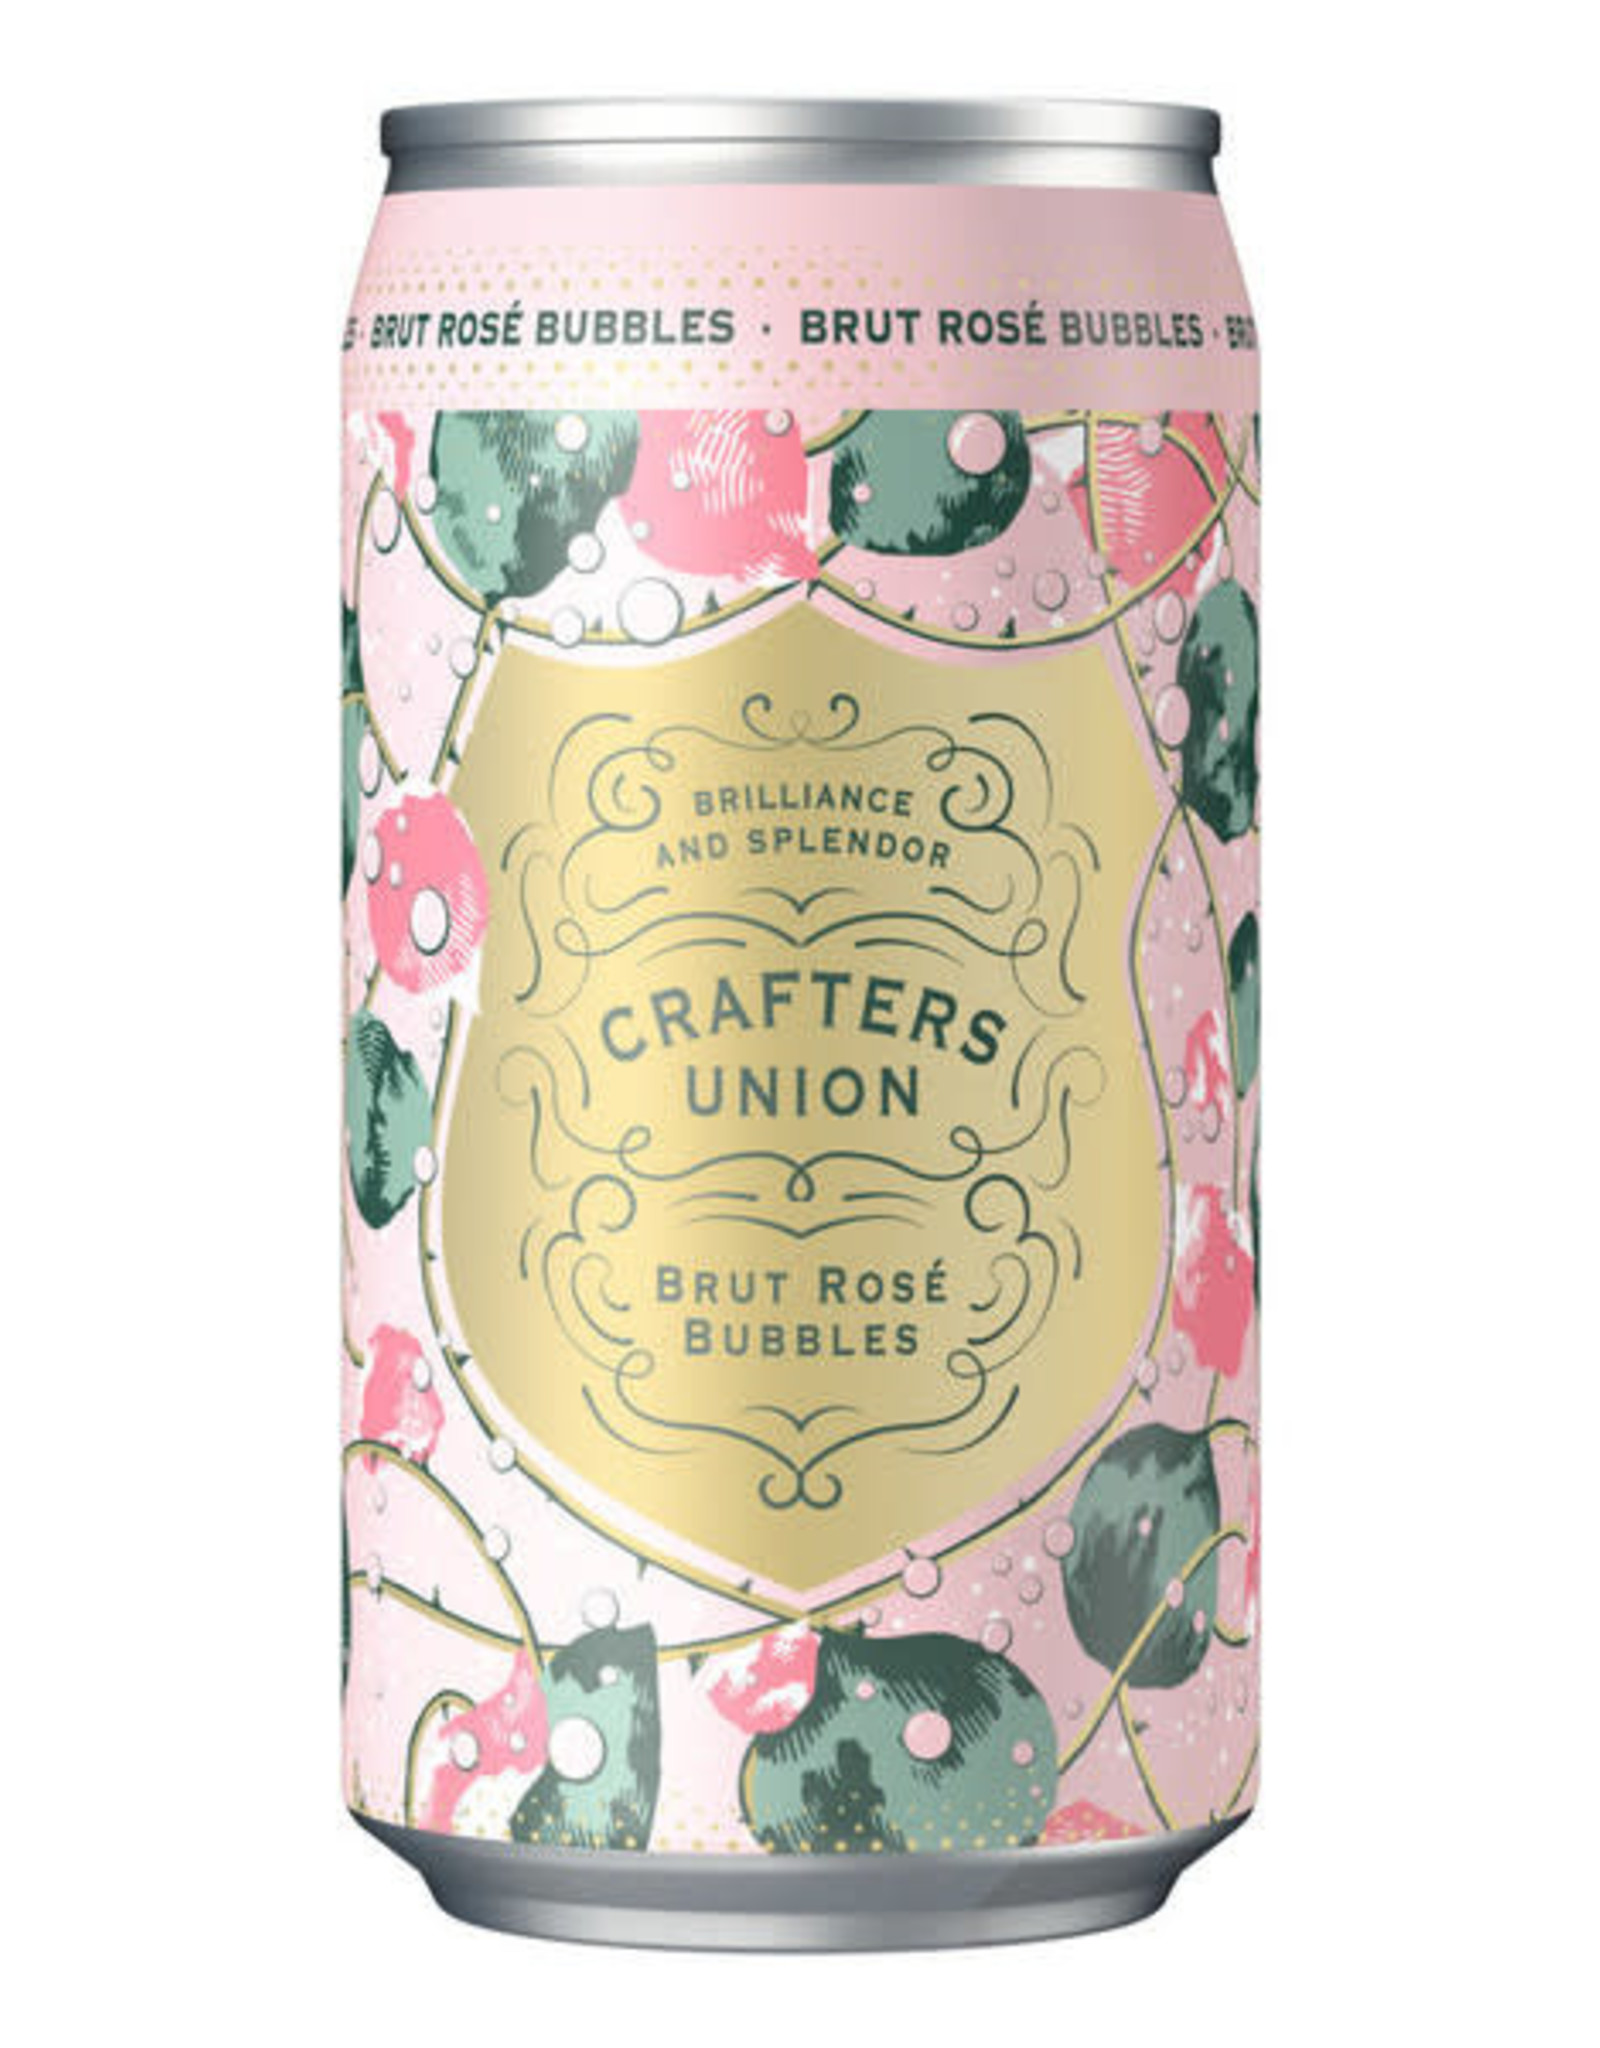 Crafters Union Brut Rose Bubbles 375 ml can